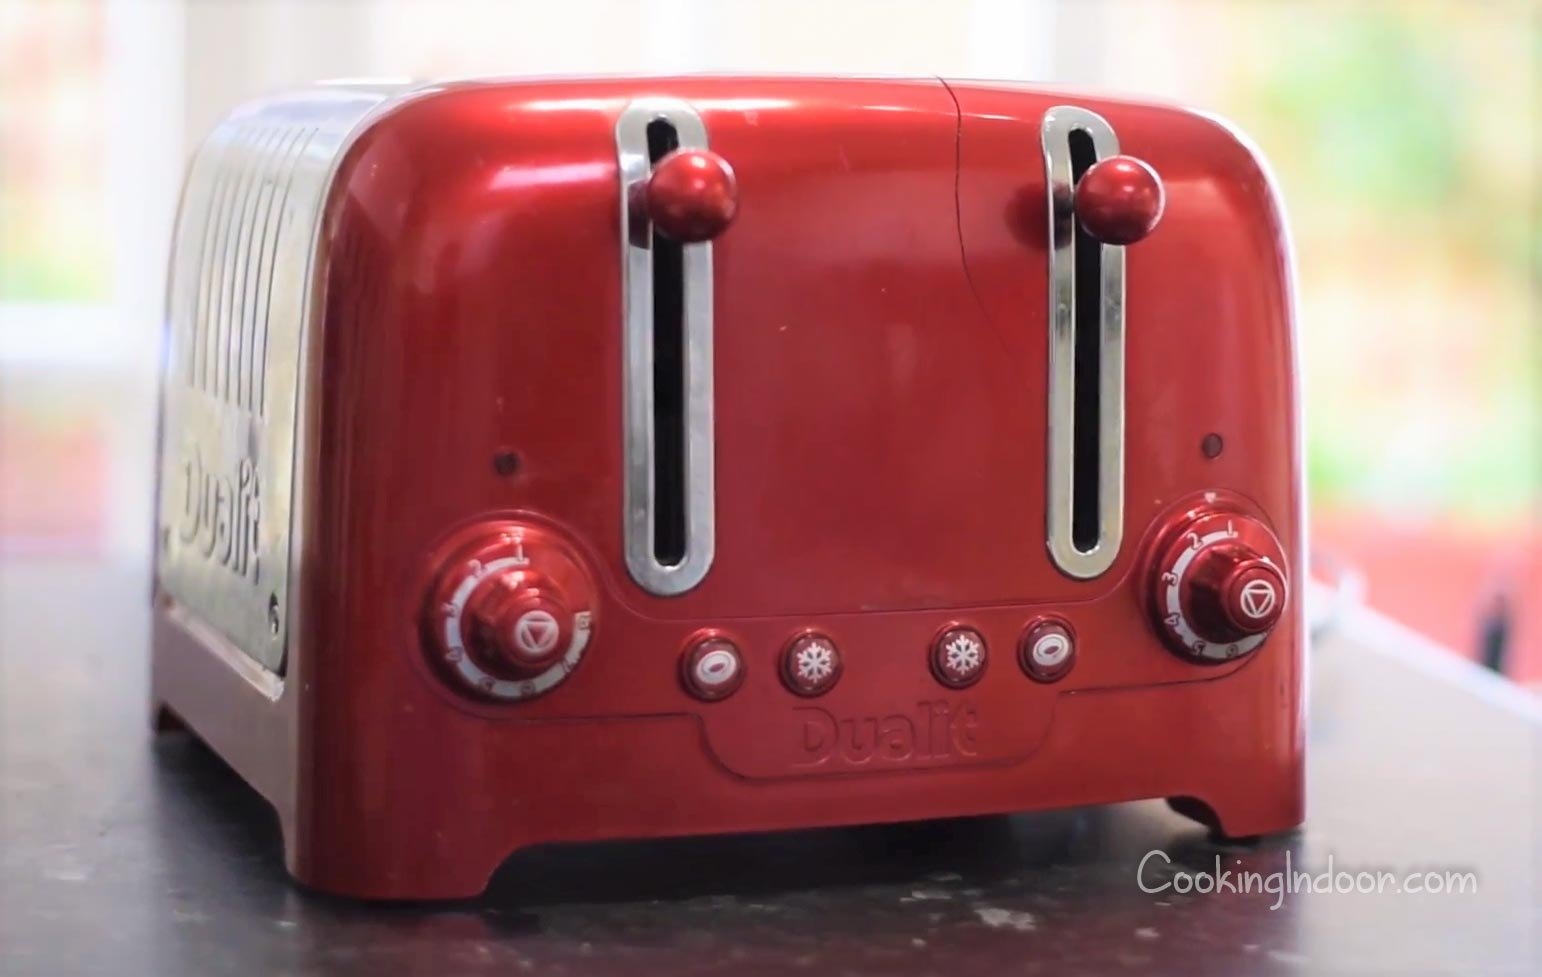 Best red 4 slice toaster